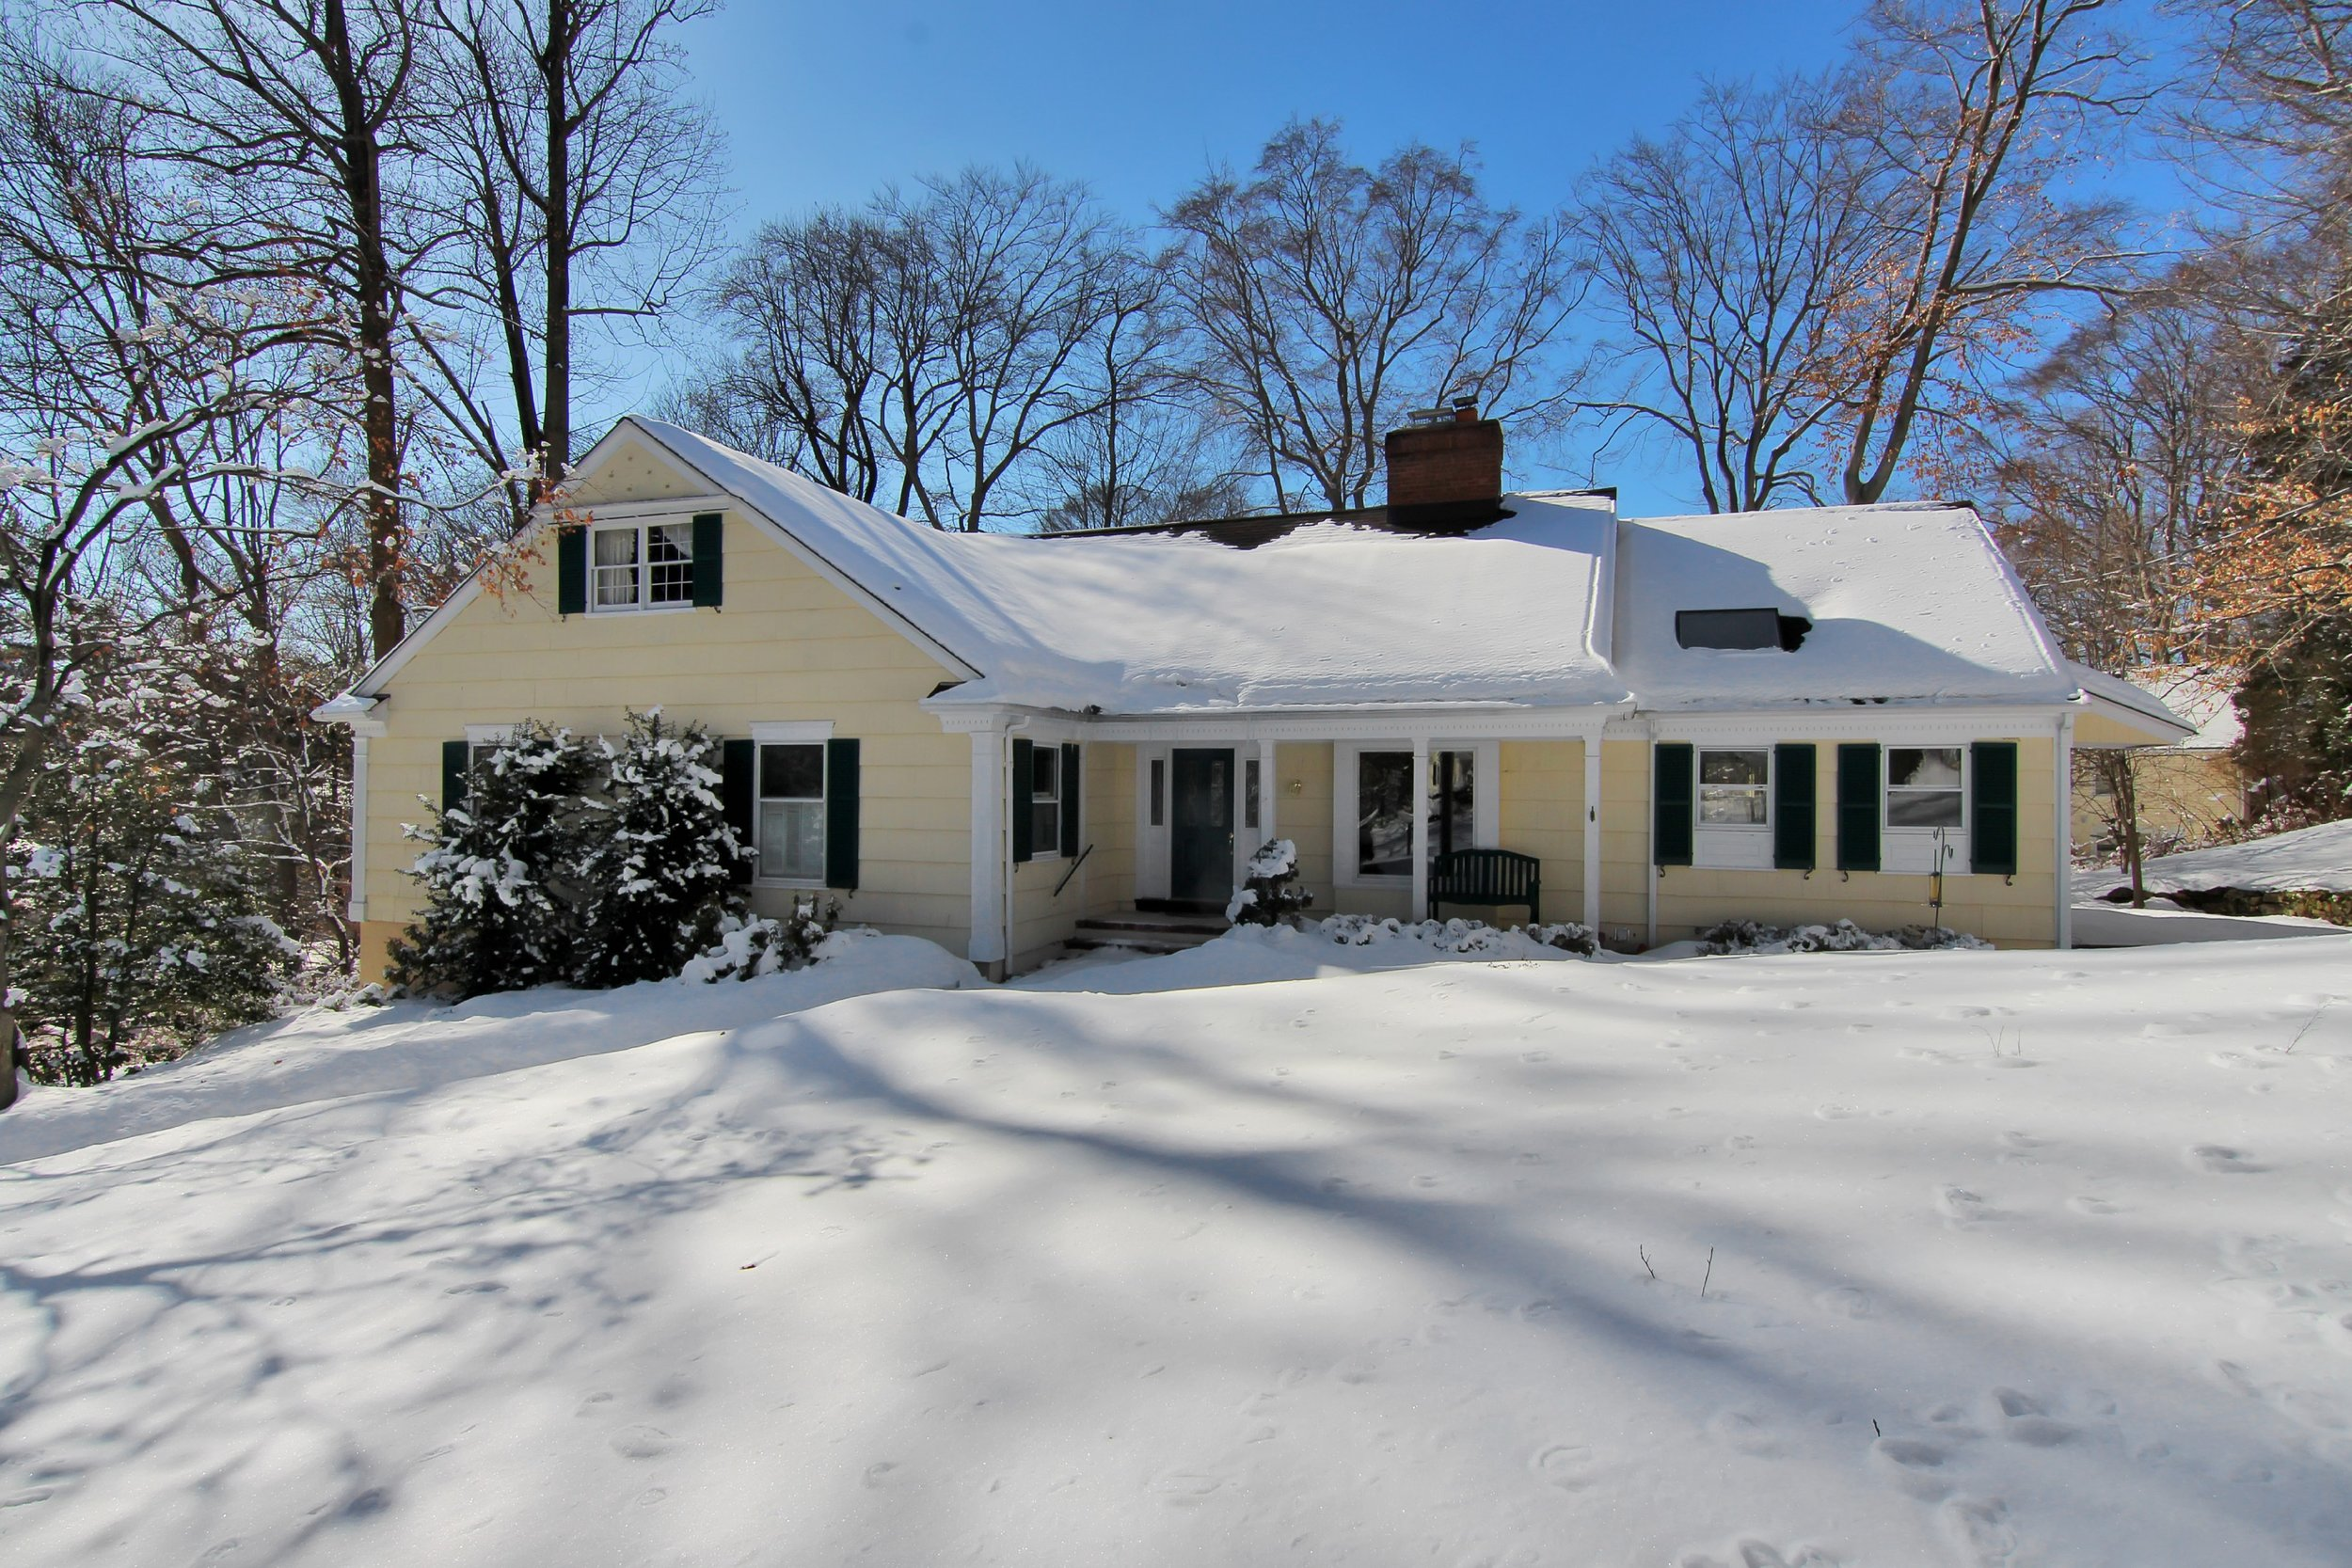 Morris Township<br>Offered at $649,000